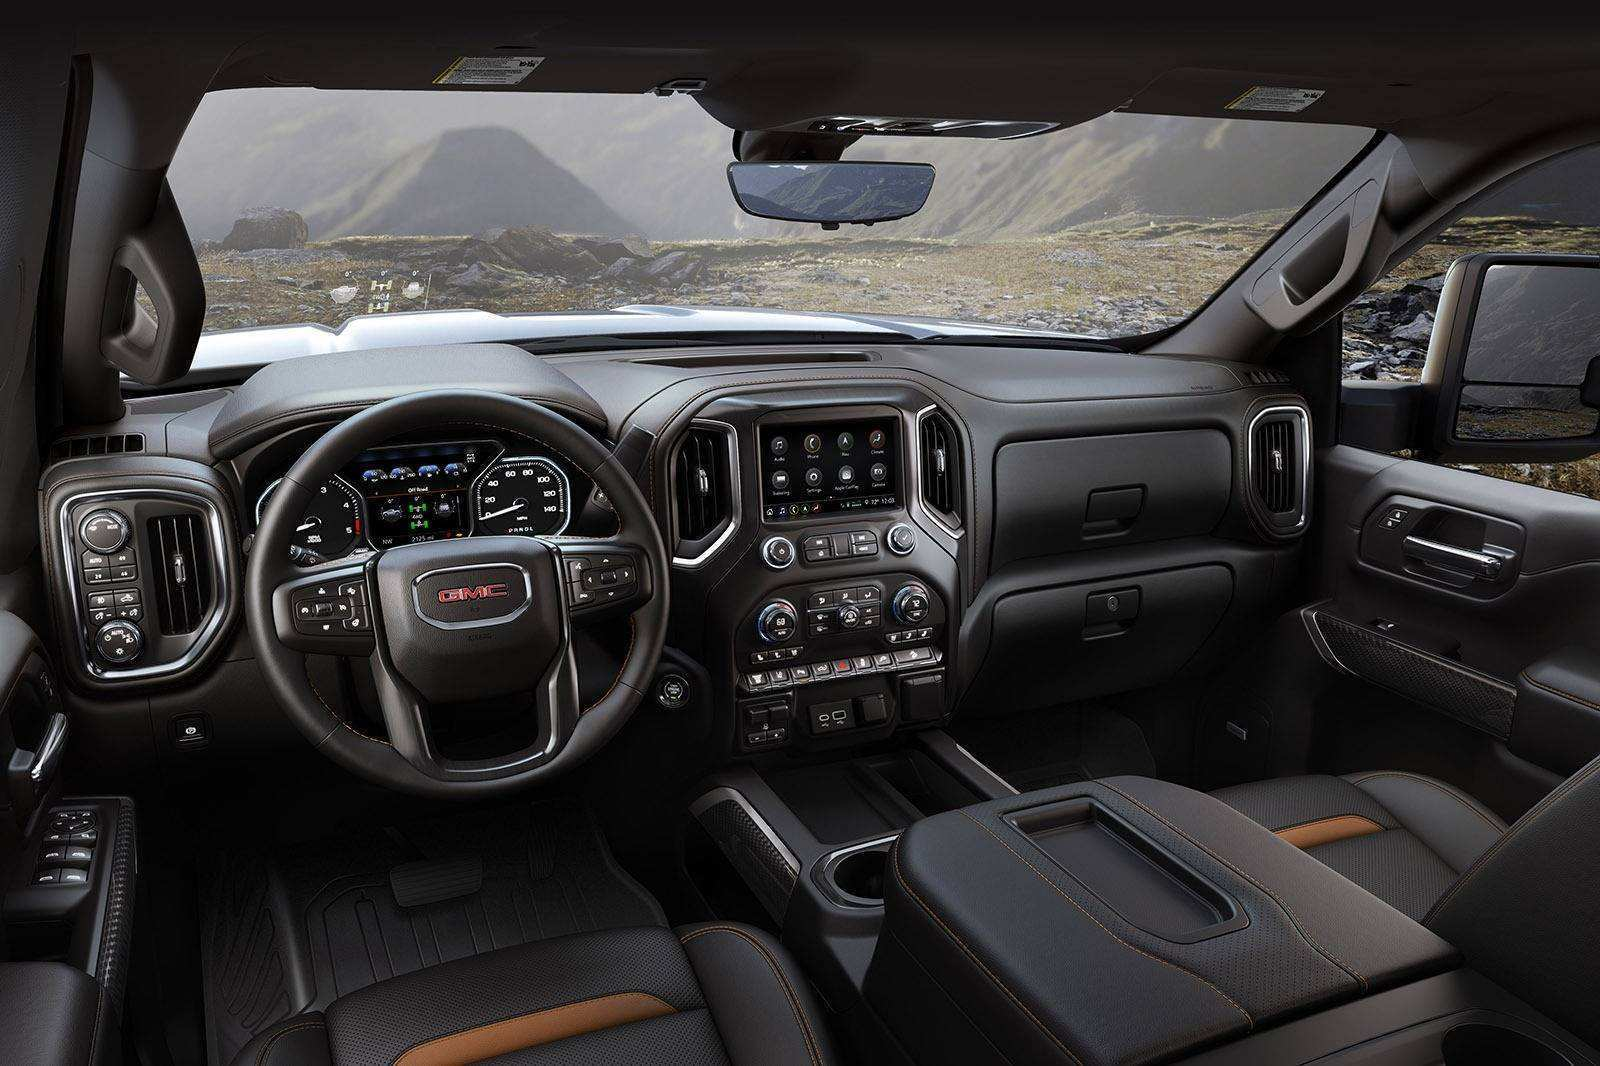 41 The 2020 GMC Sierra Hd Images